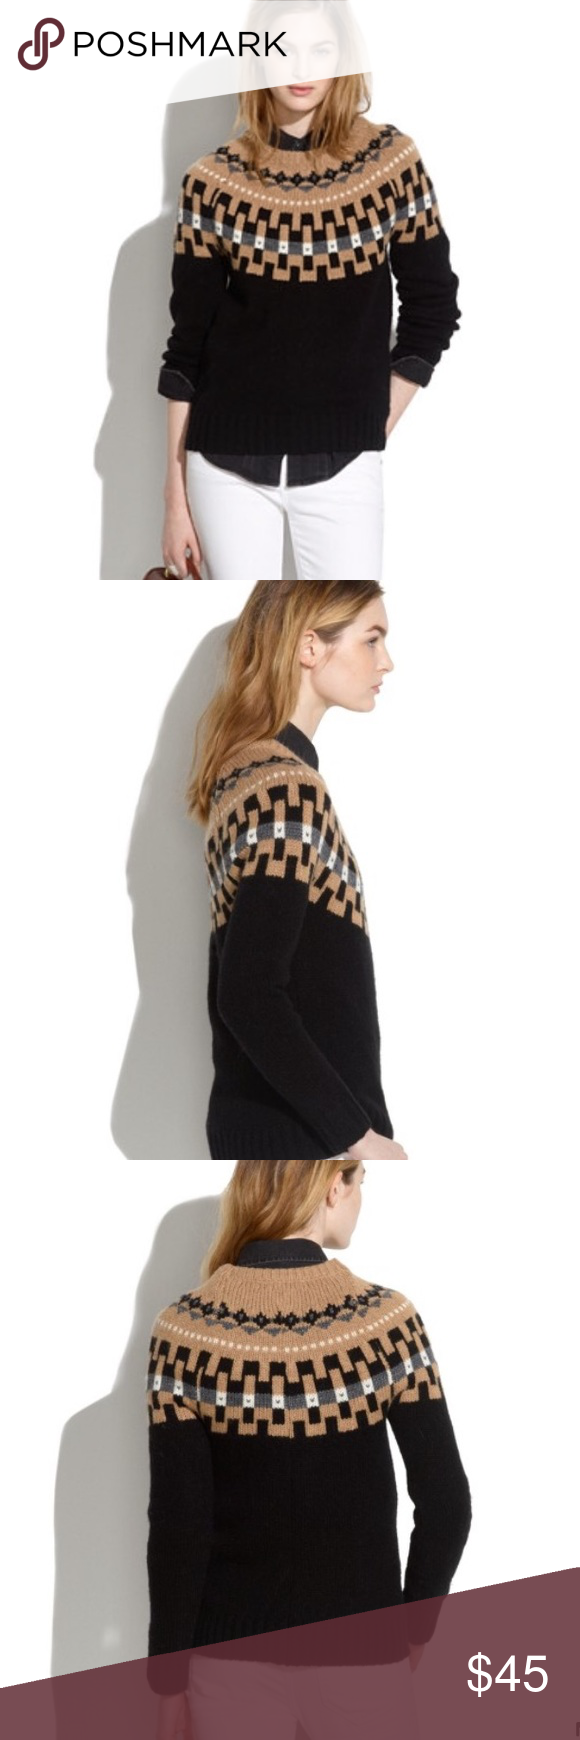 Madewell modern slope sweater Classic ski sweater from Madewell with the best neutral color combo. Wool blend dry clean only Madewell Sweaters Crew & Scoop Necks